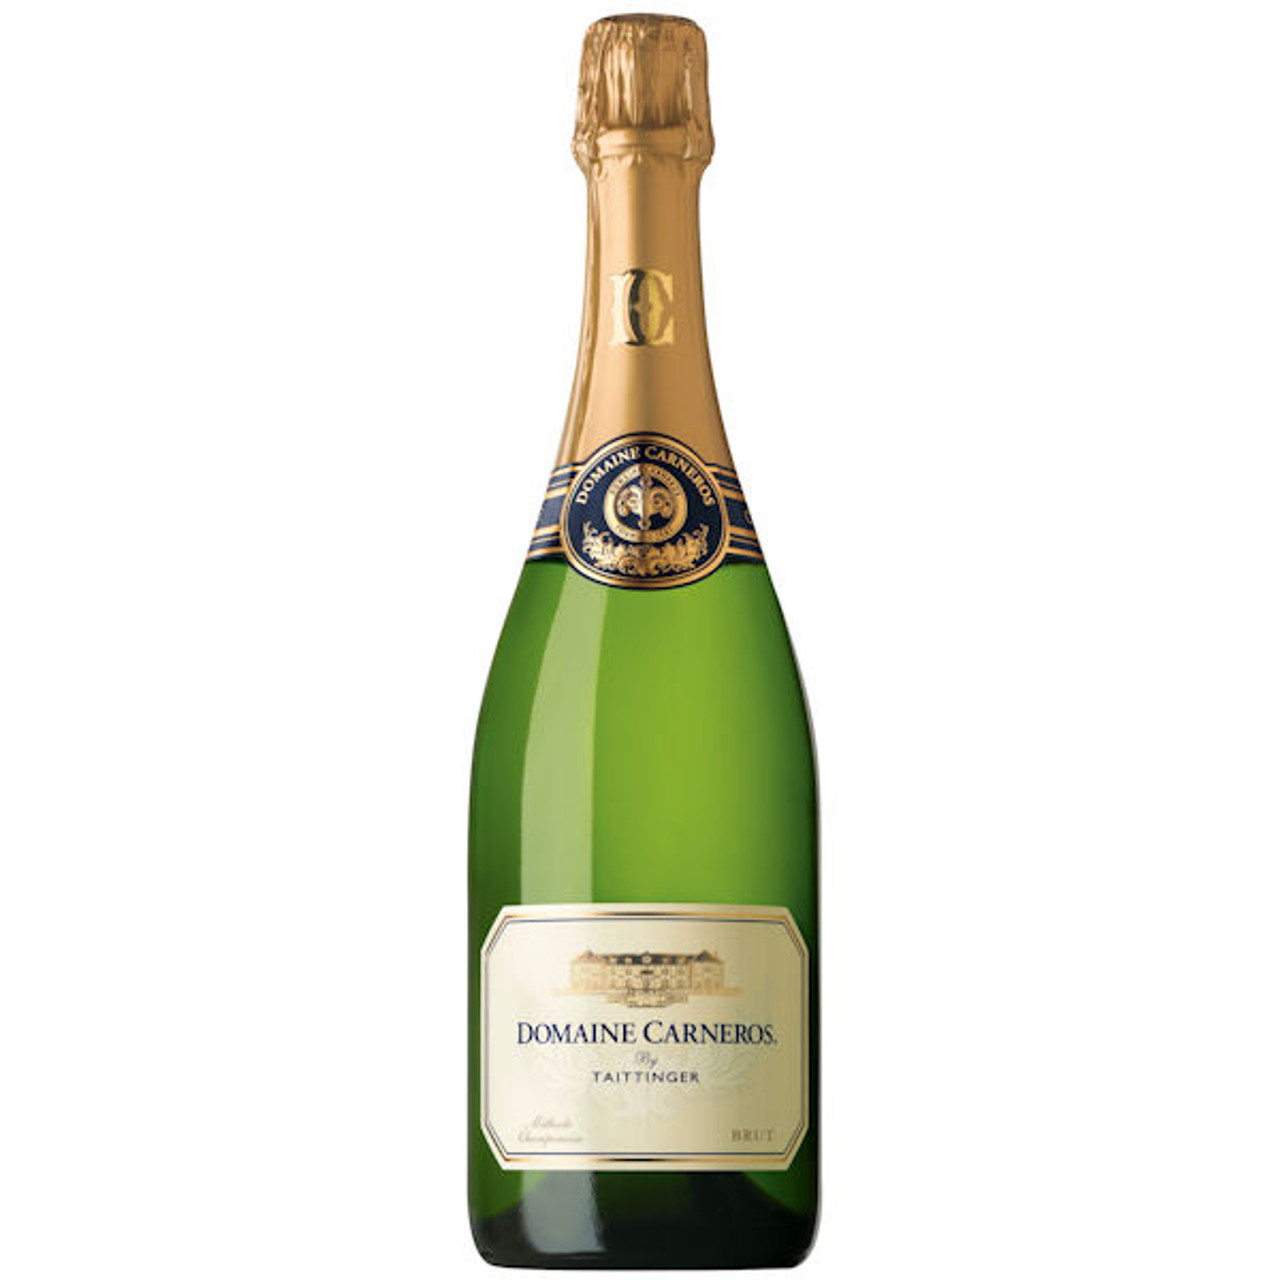 Domaine Carneros by Taittinger Brut Cuvee 2014